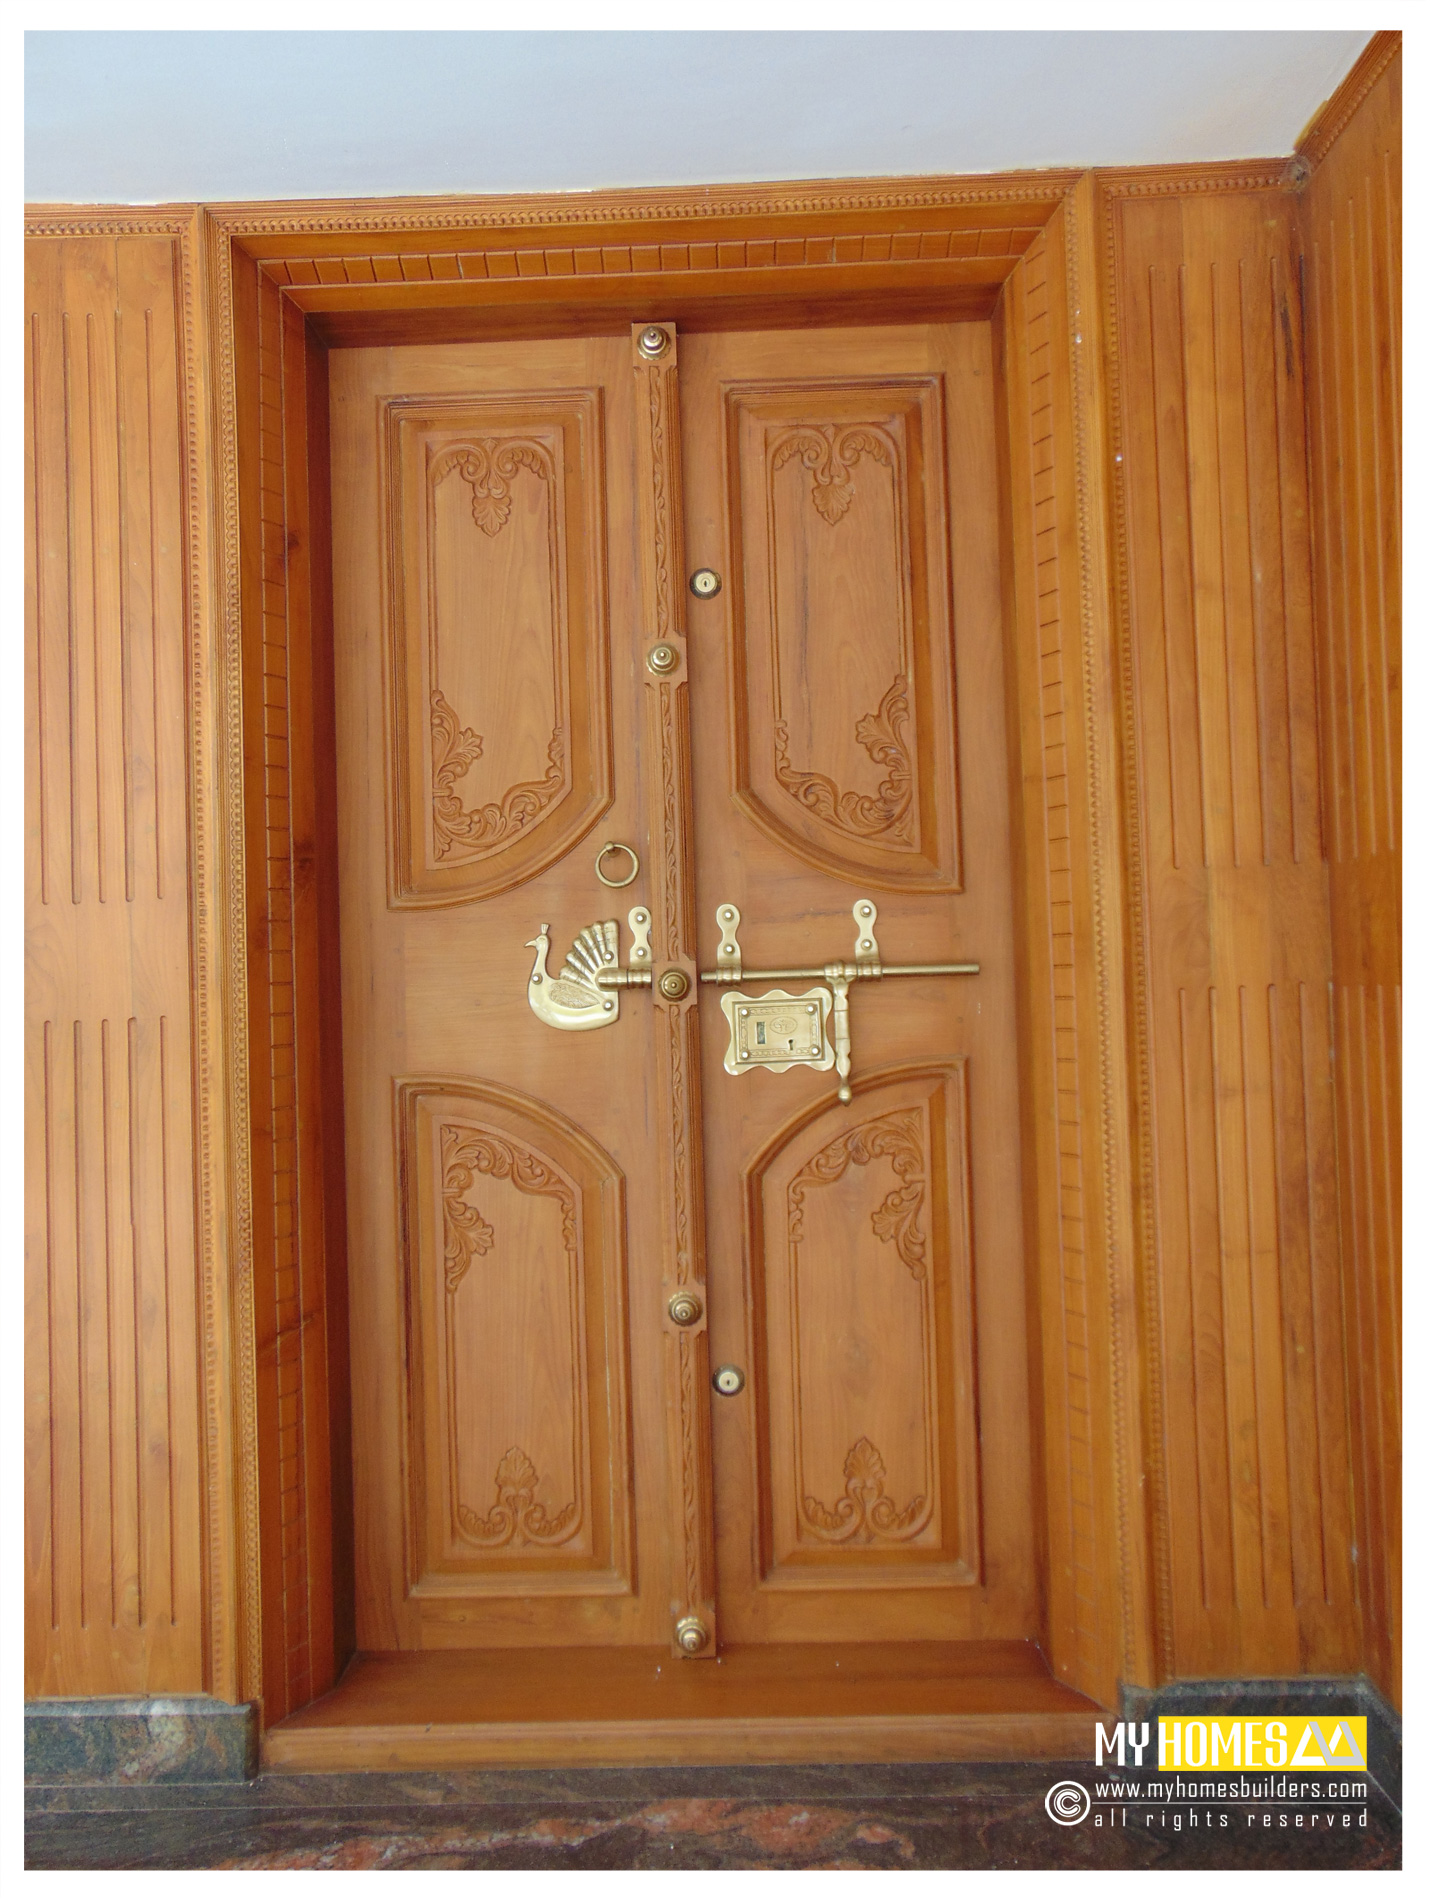 New idea for homes main door designs in kerala india for Entrance double door designs for houses